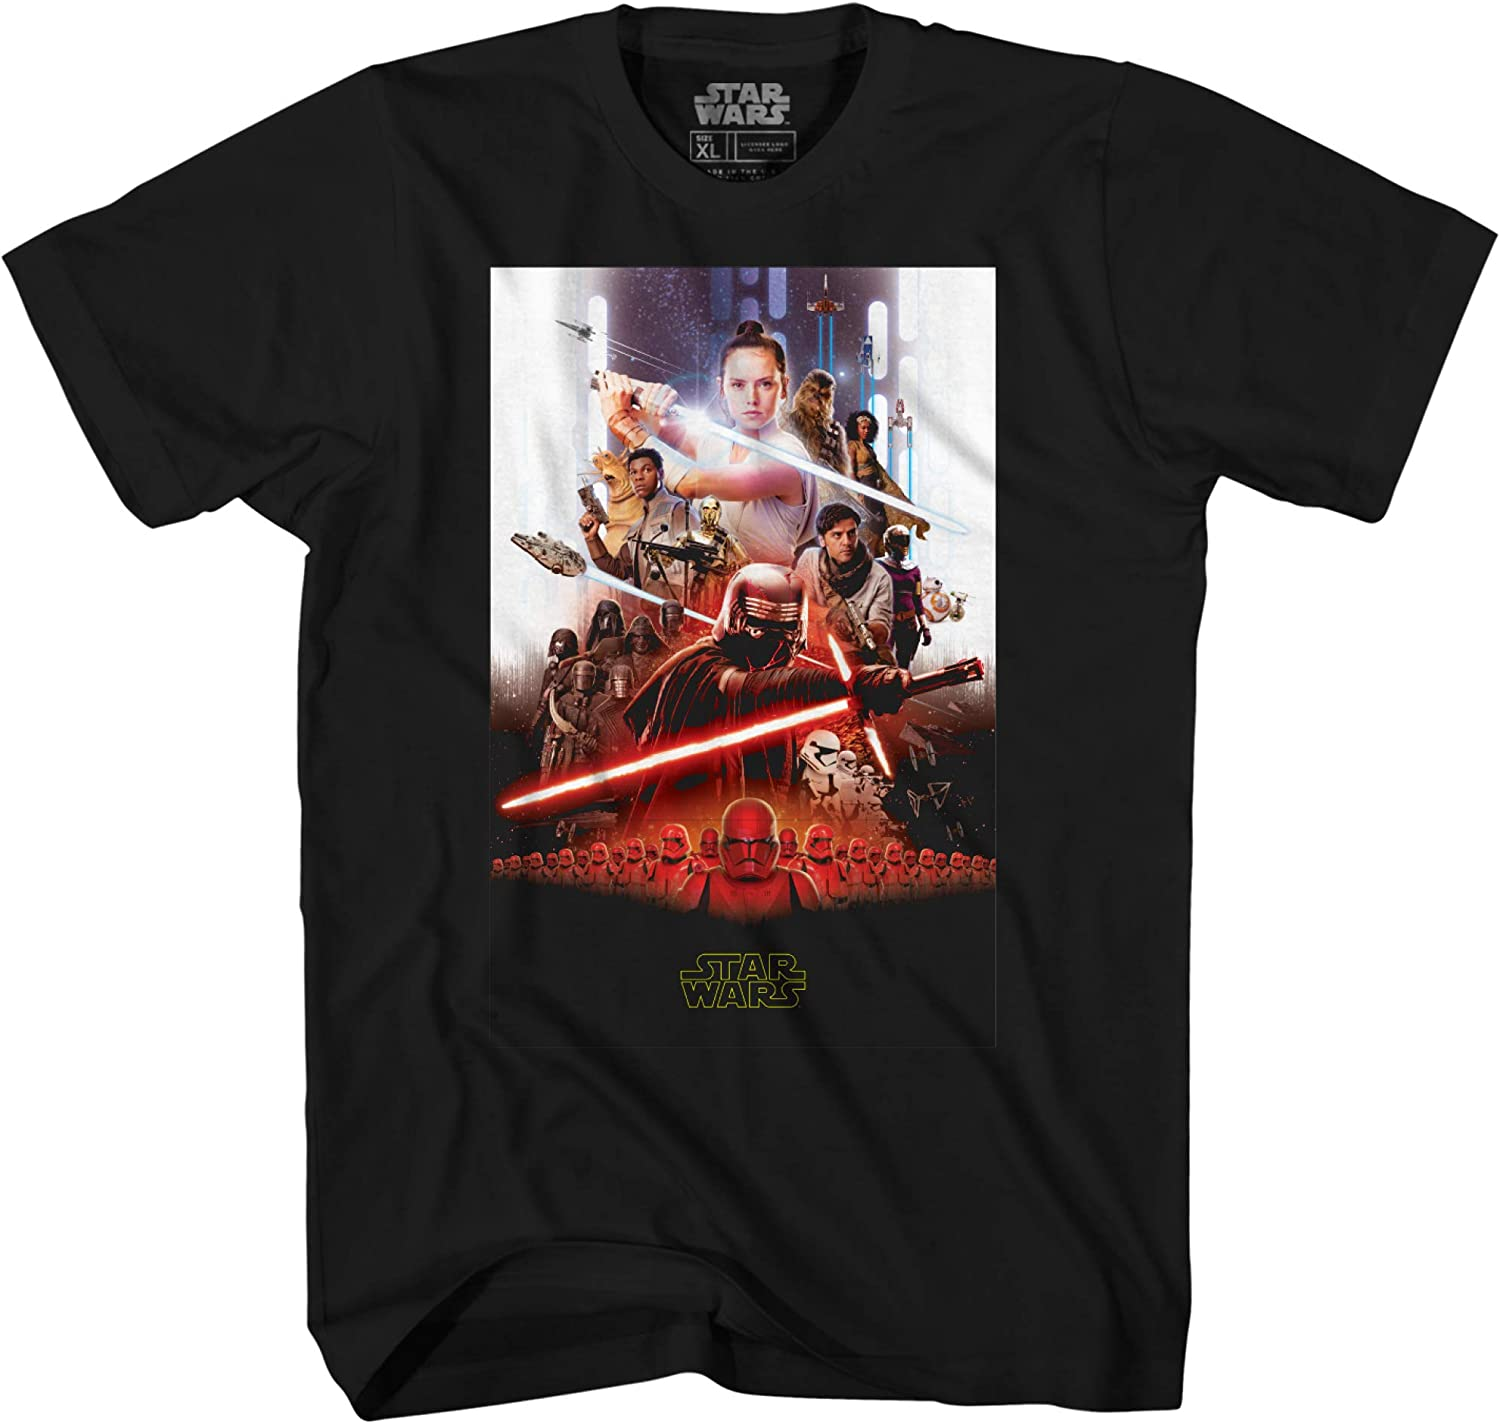 Star Wars Episode Ix Rise Of Skywalker Movie Poster T Shirt Amazon Com